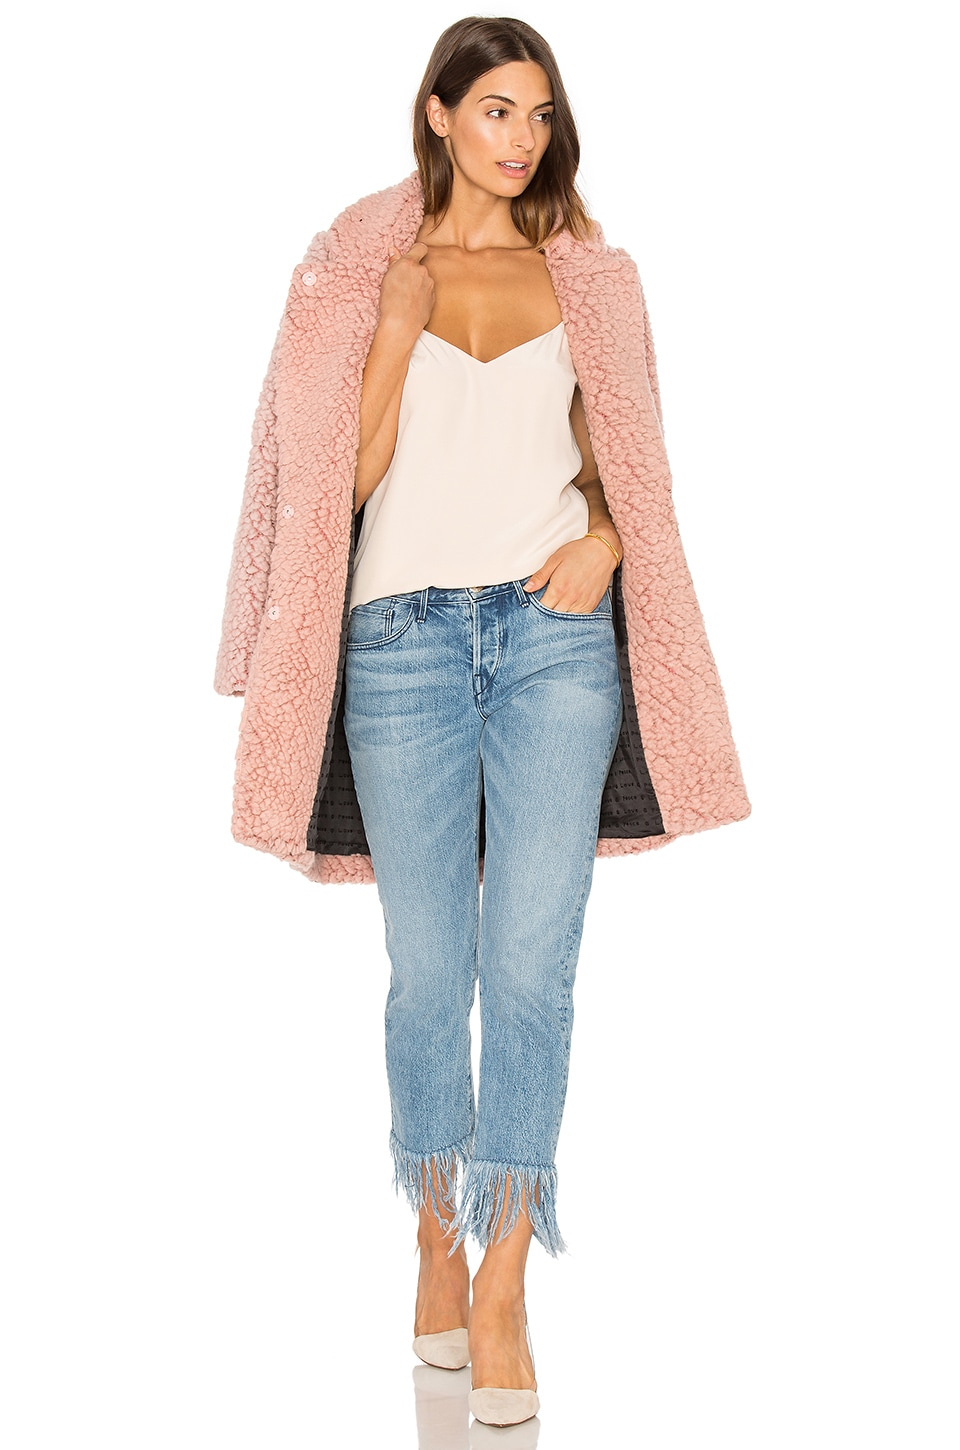 Maison Scotch Teddy Bear Cocoon Faux Fur Coat in Blossom Melange